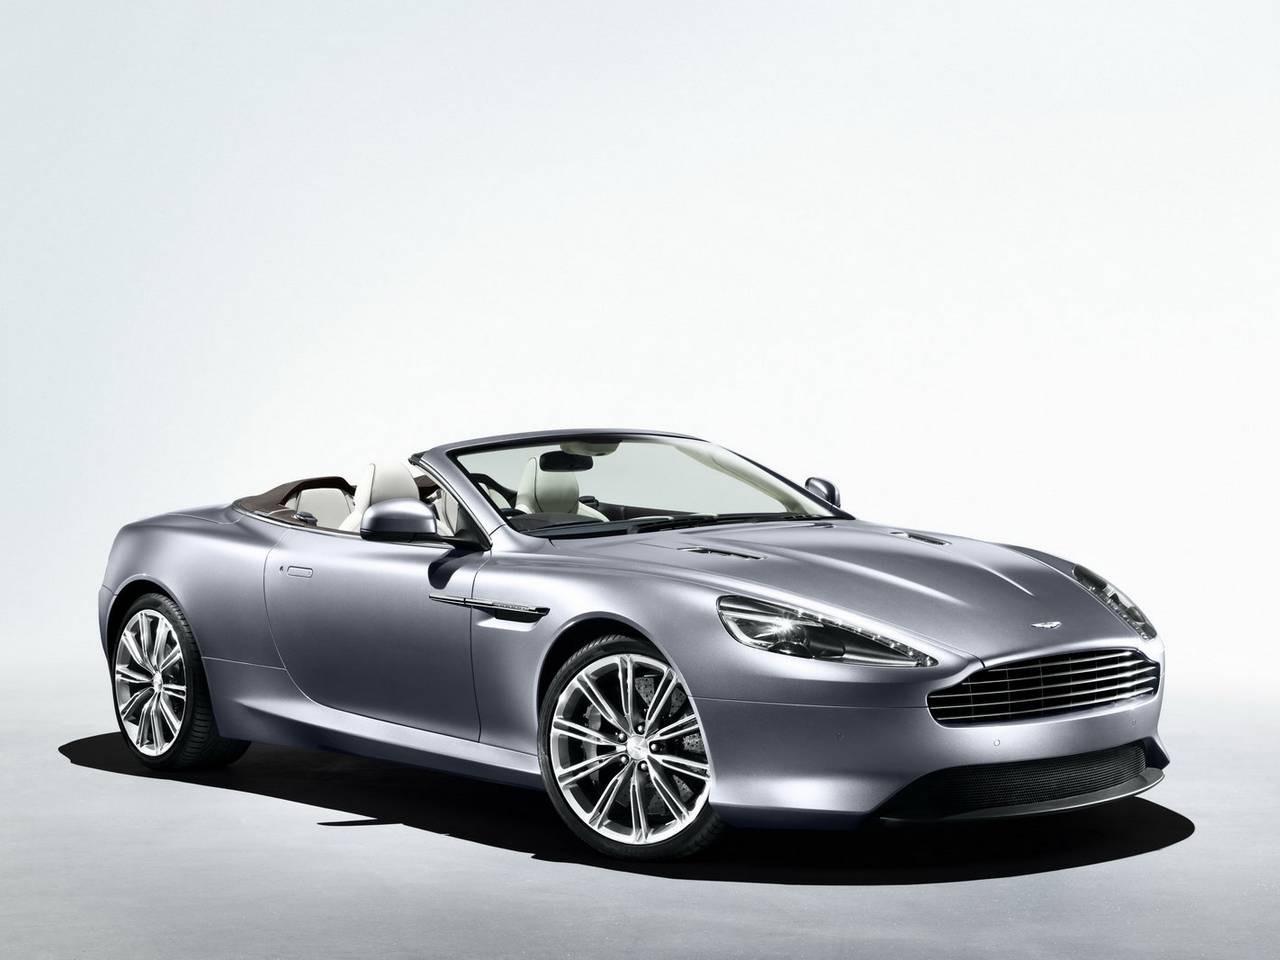 Aston Martin Virage 05